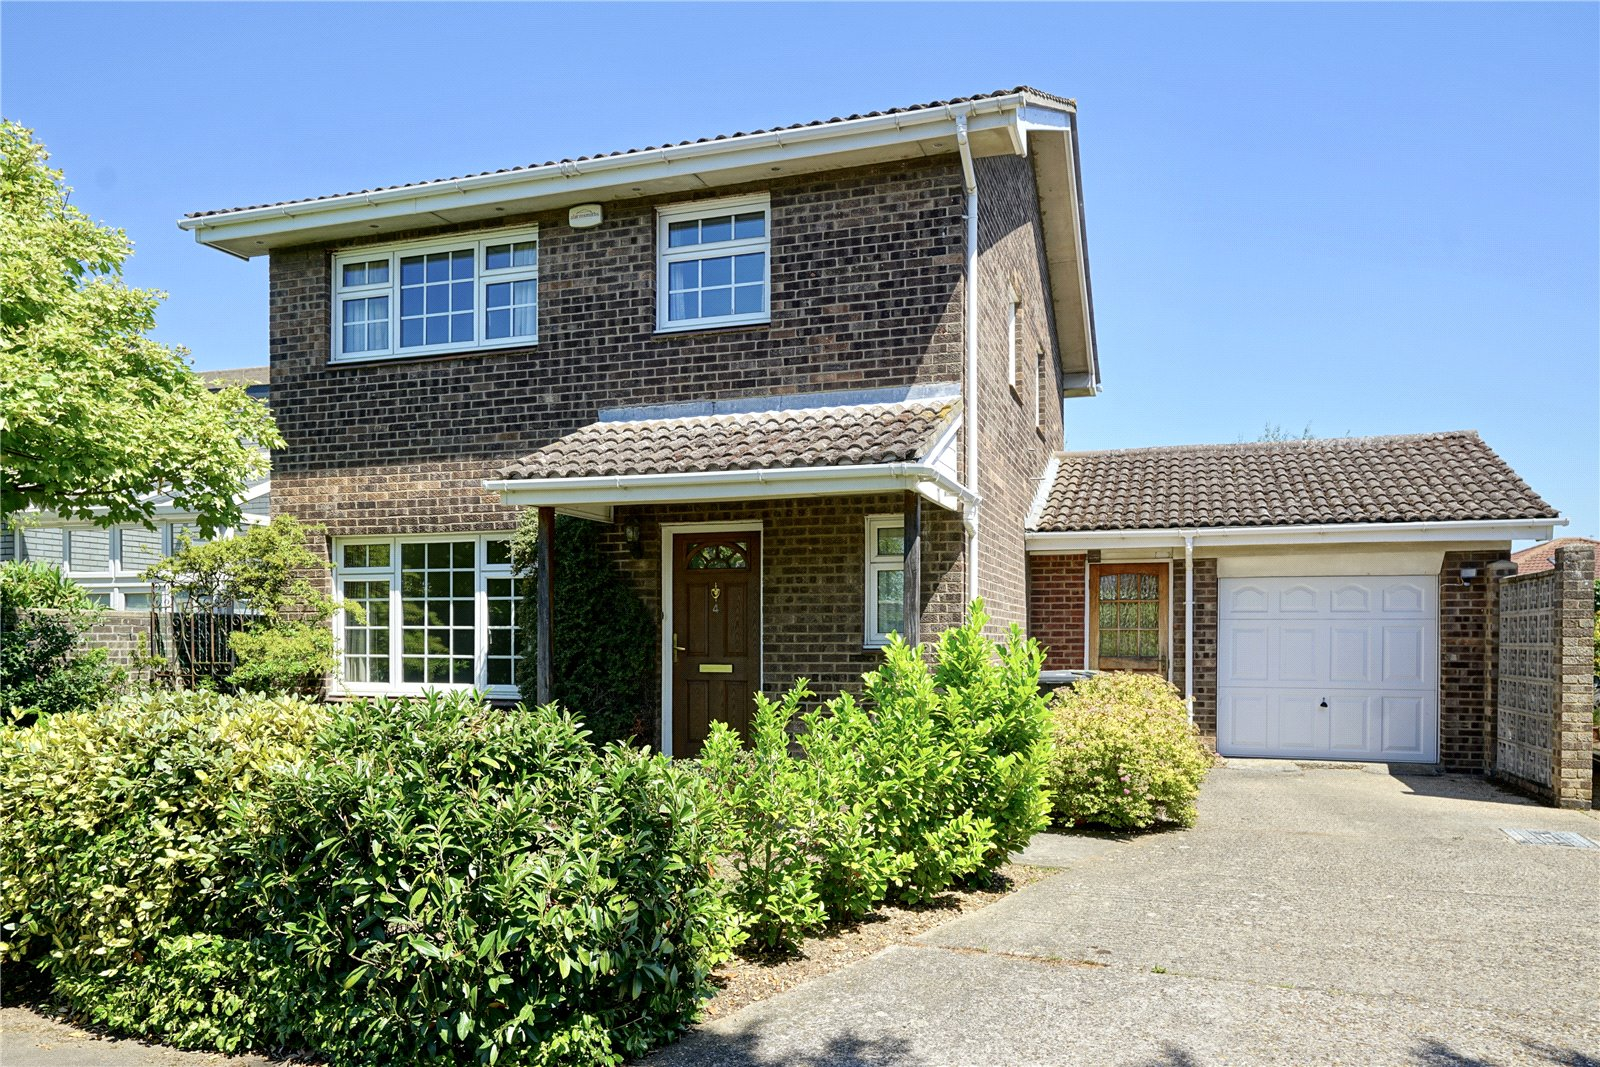 4 bed house for sale in All Hallows, Sandy, SG19